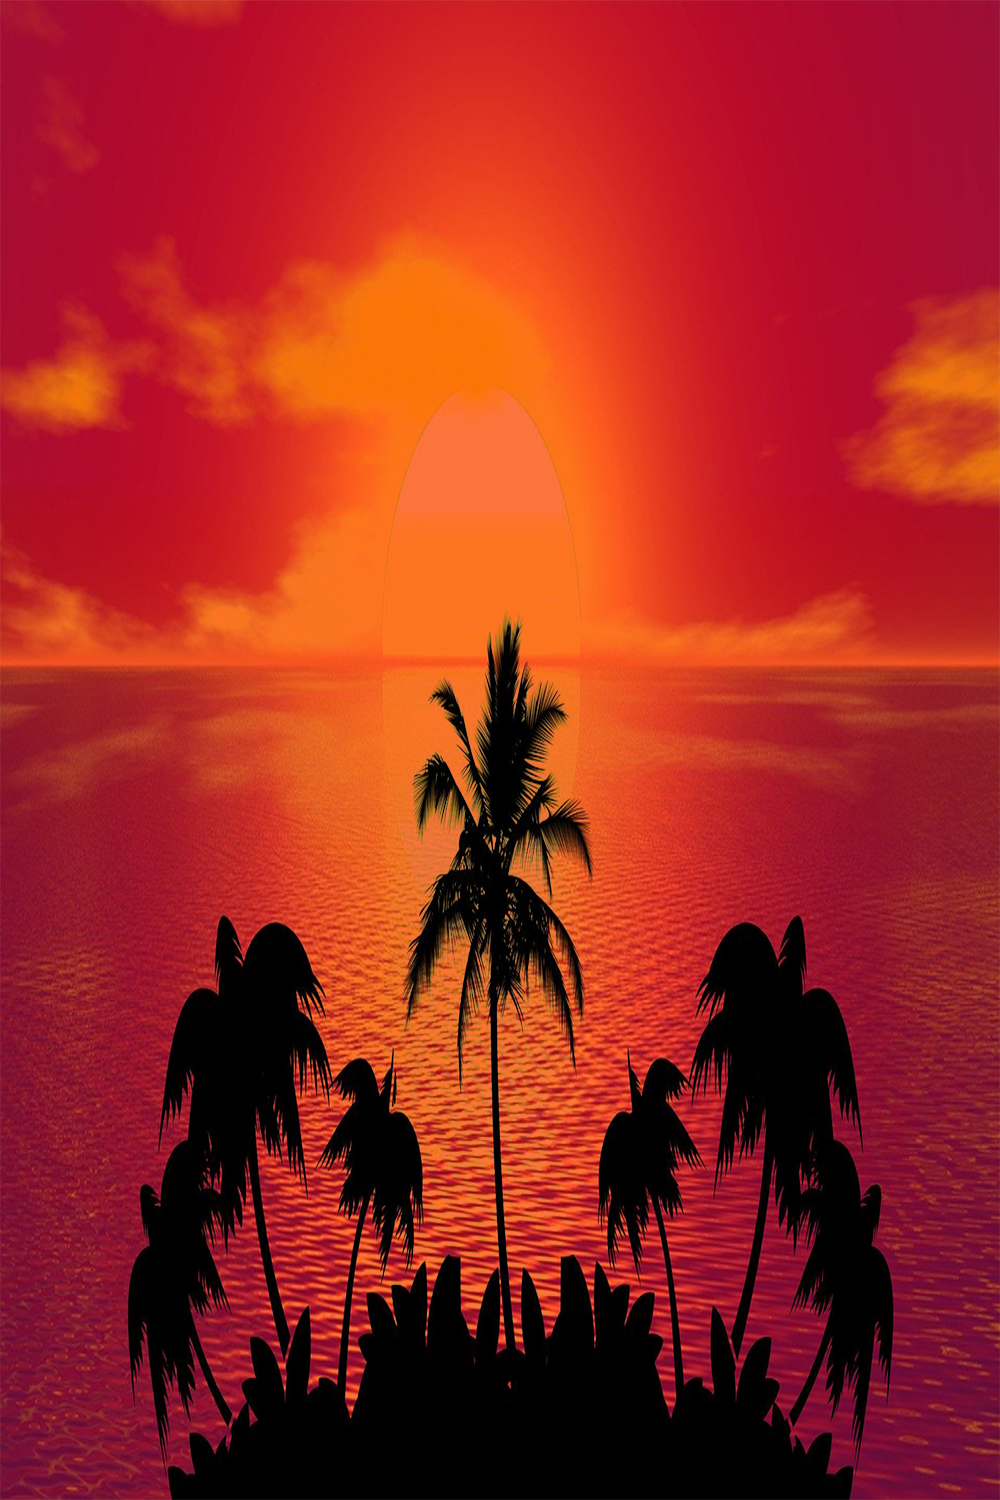 Best Aesthetic Background Wallpaper Free Download - iPhone ...